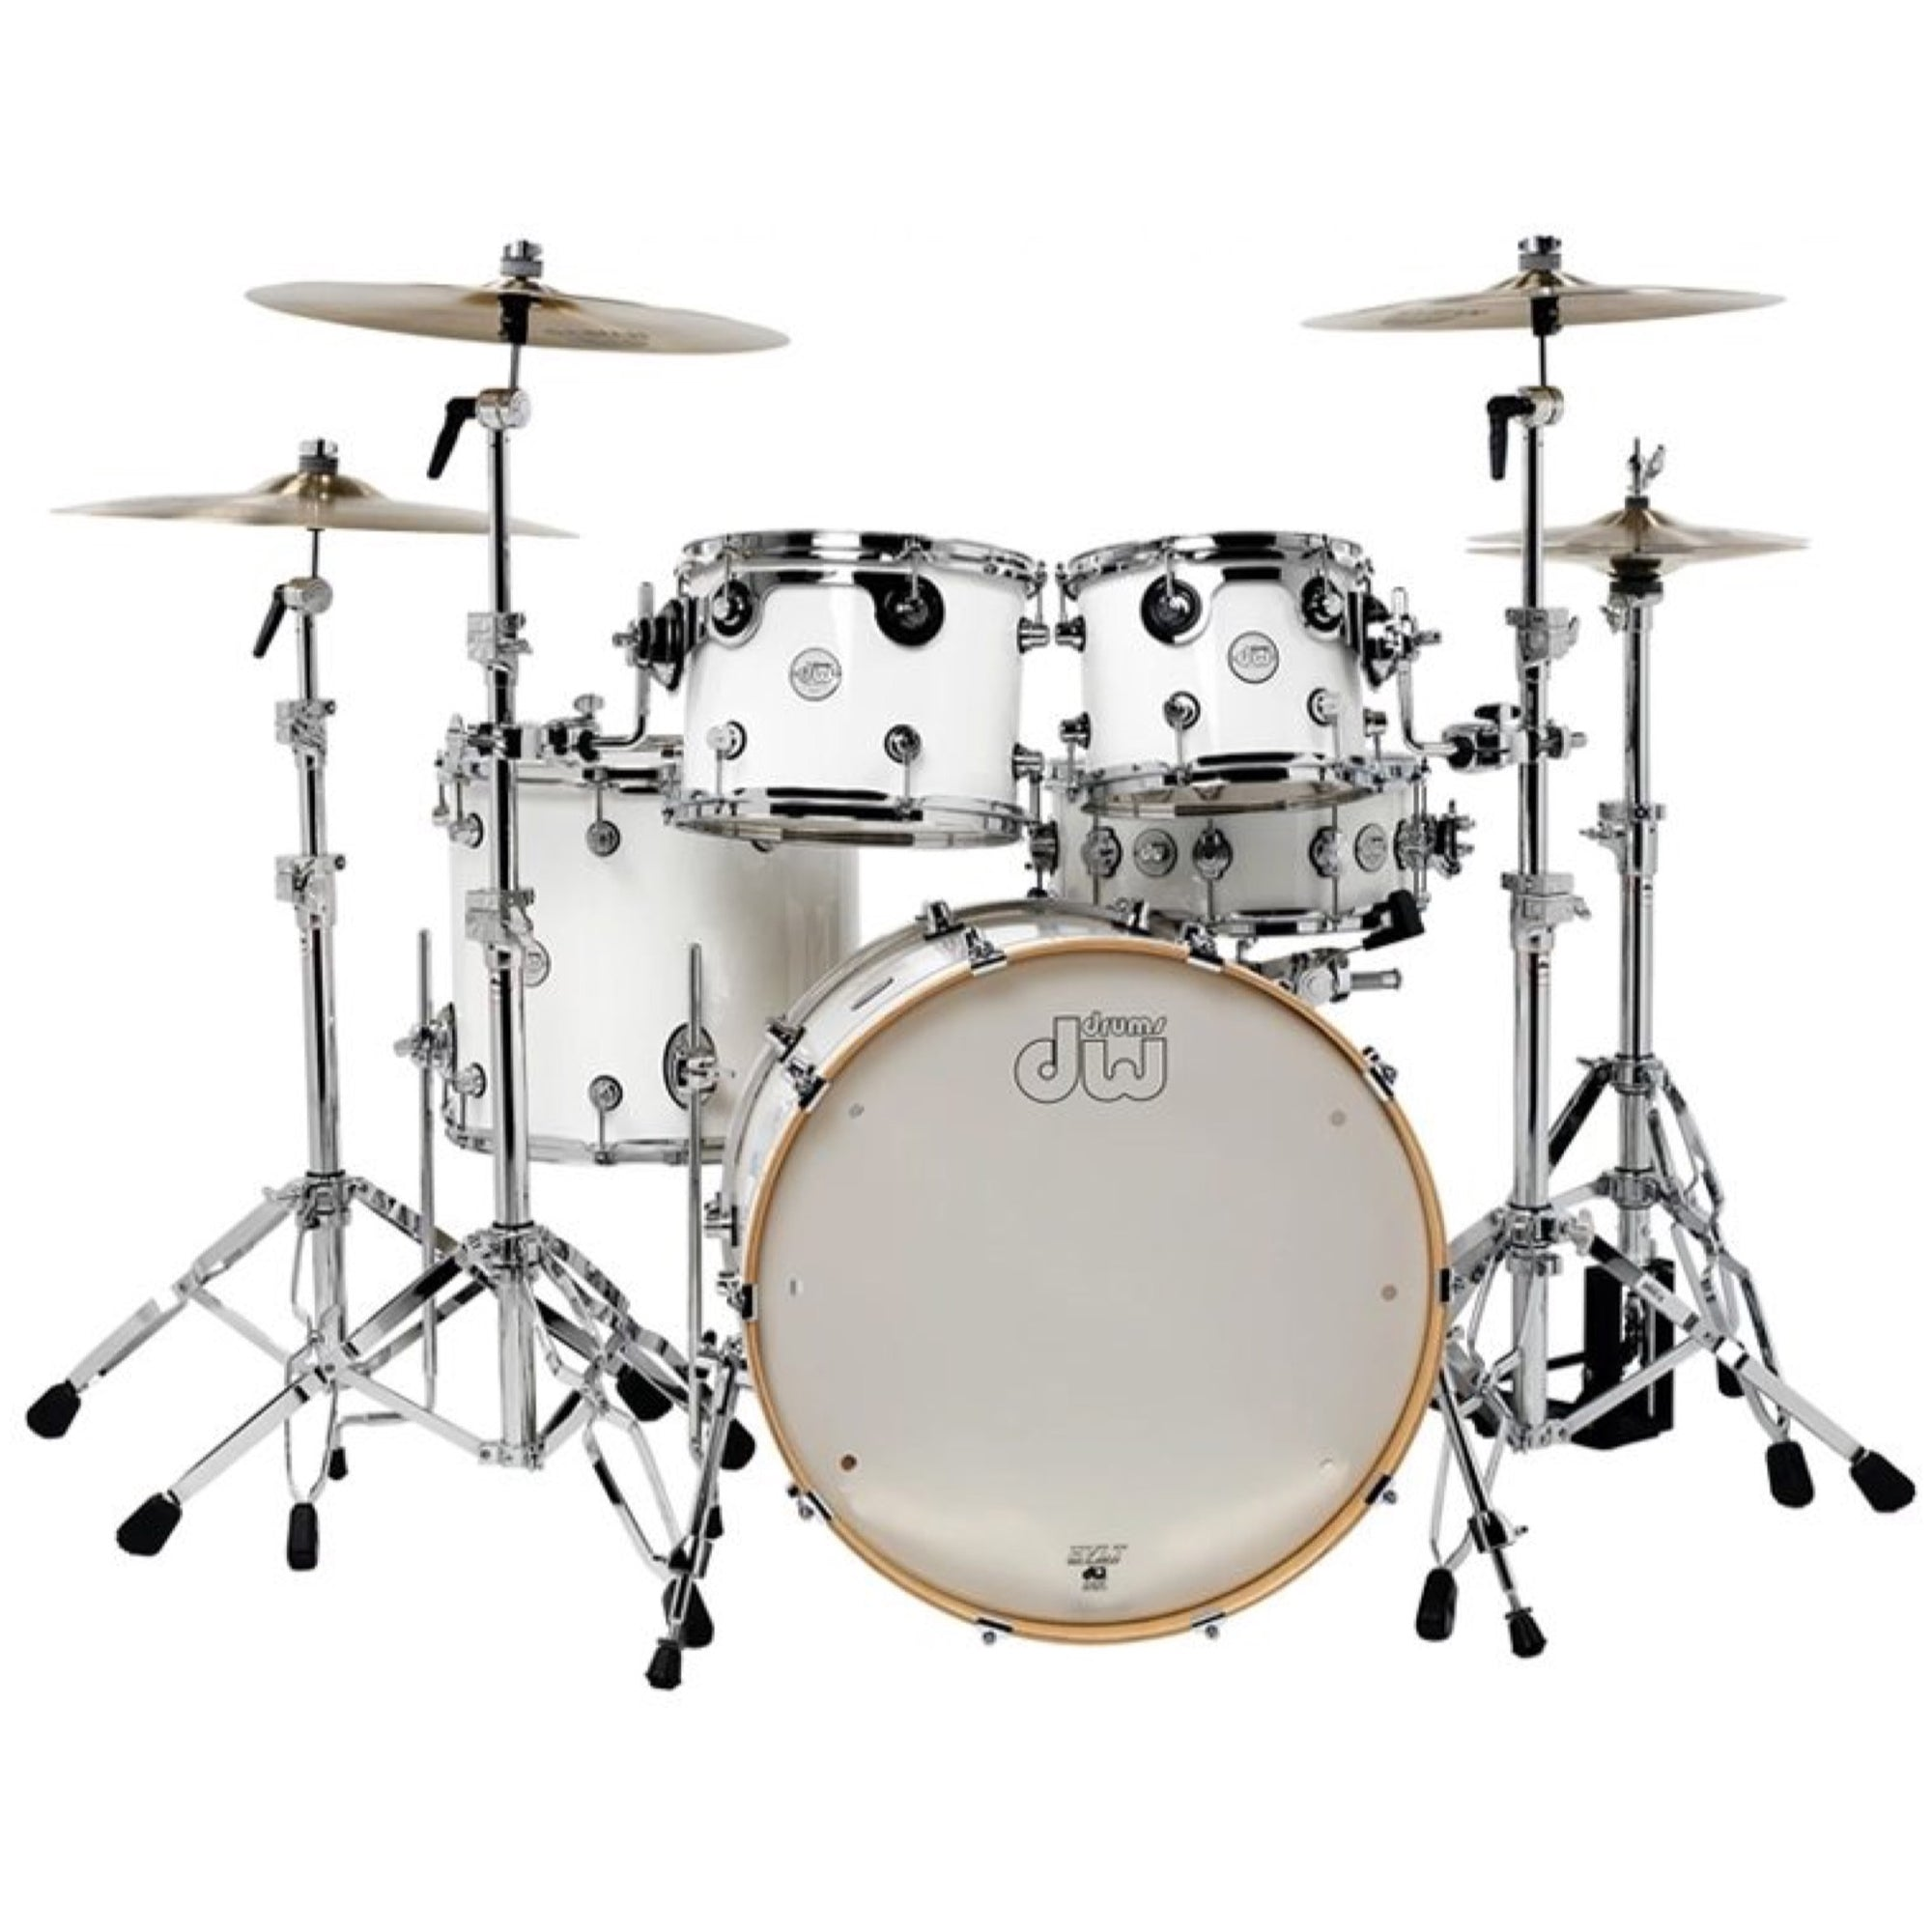 Drum Workshop DDLG2215 Design Series Drum Shell Kit, 5-Piece, White